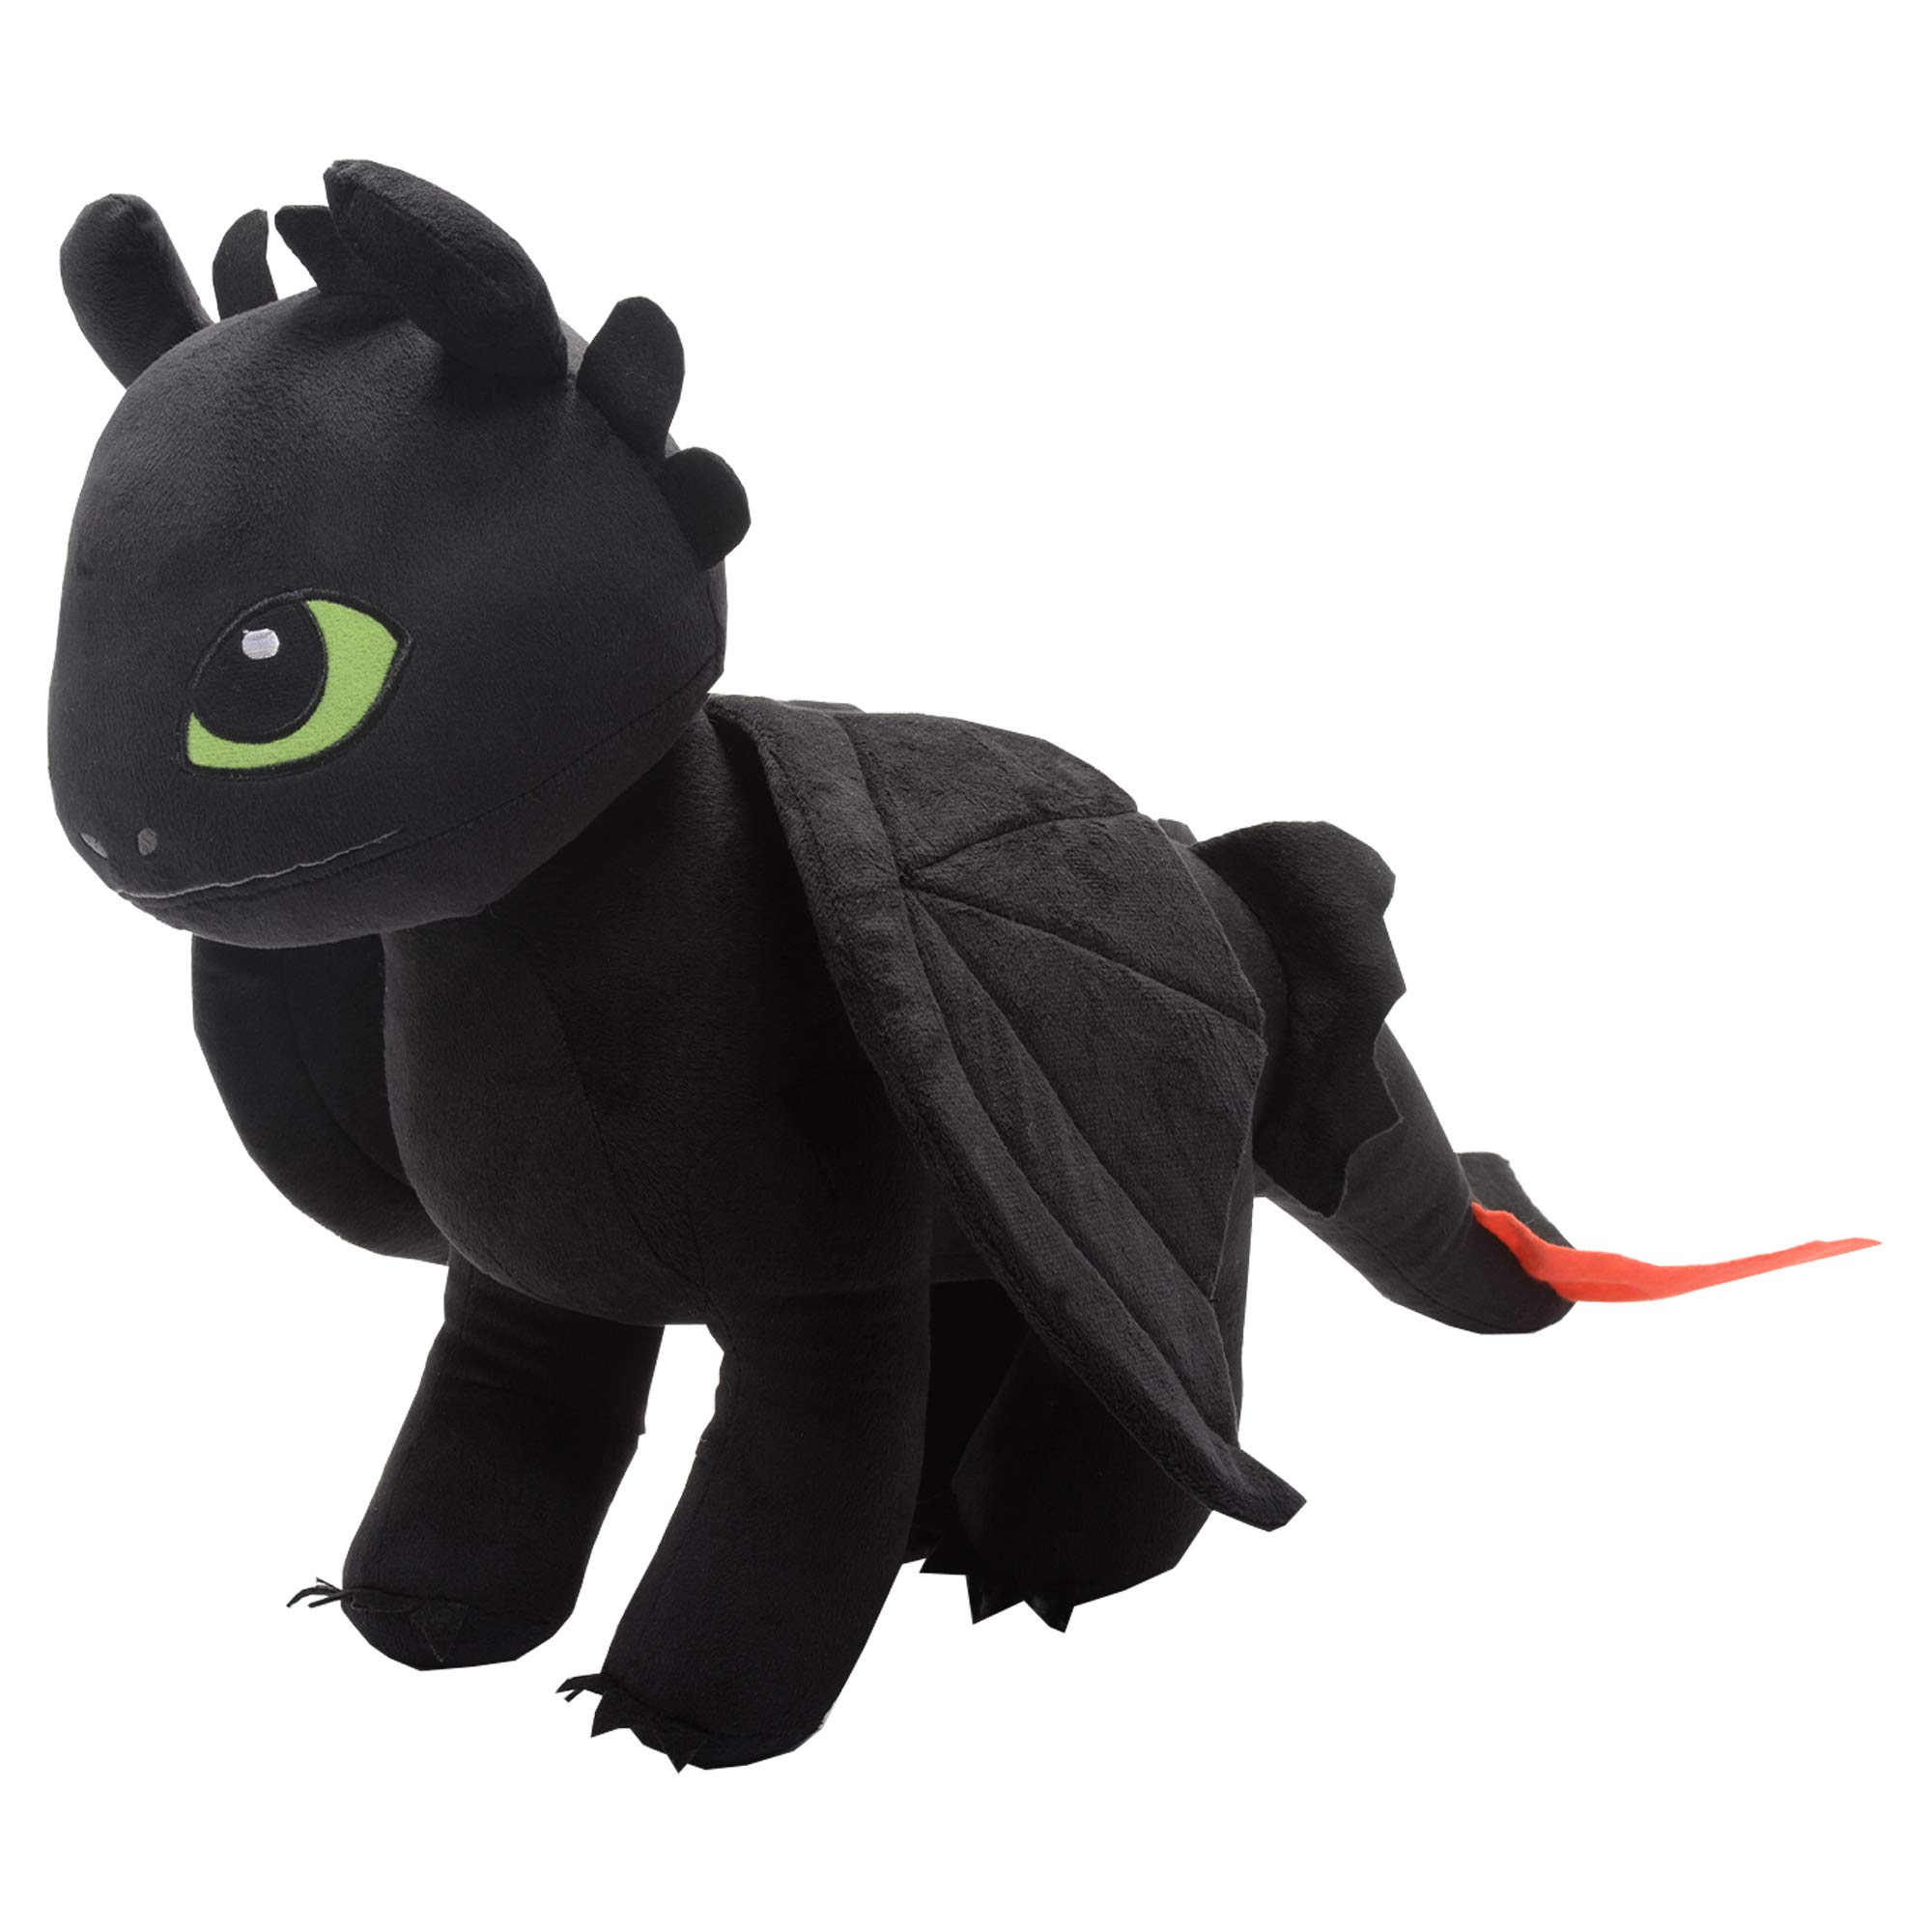 Franco Kids Bedding Super Soft Plush Snuggle Cuddle Pillow, How to How to Train Your Dragon Toothless by Franco